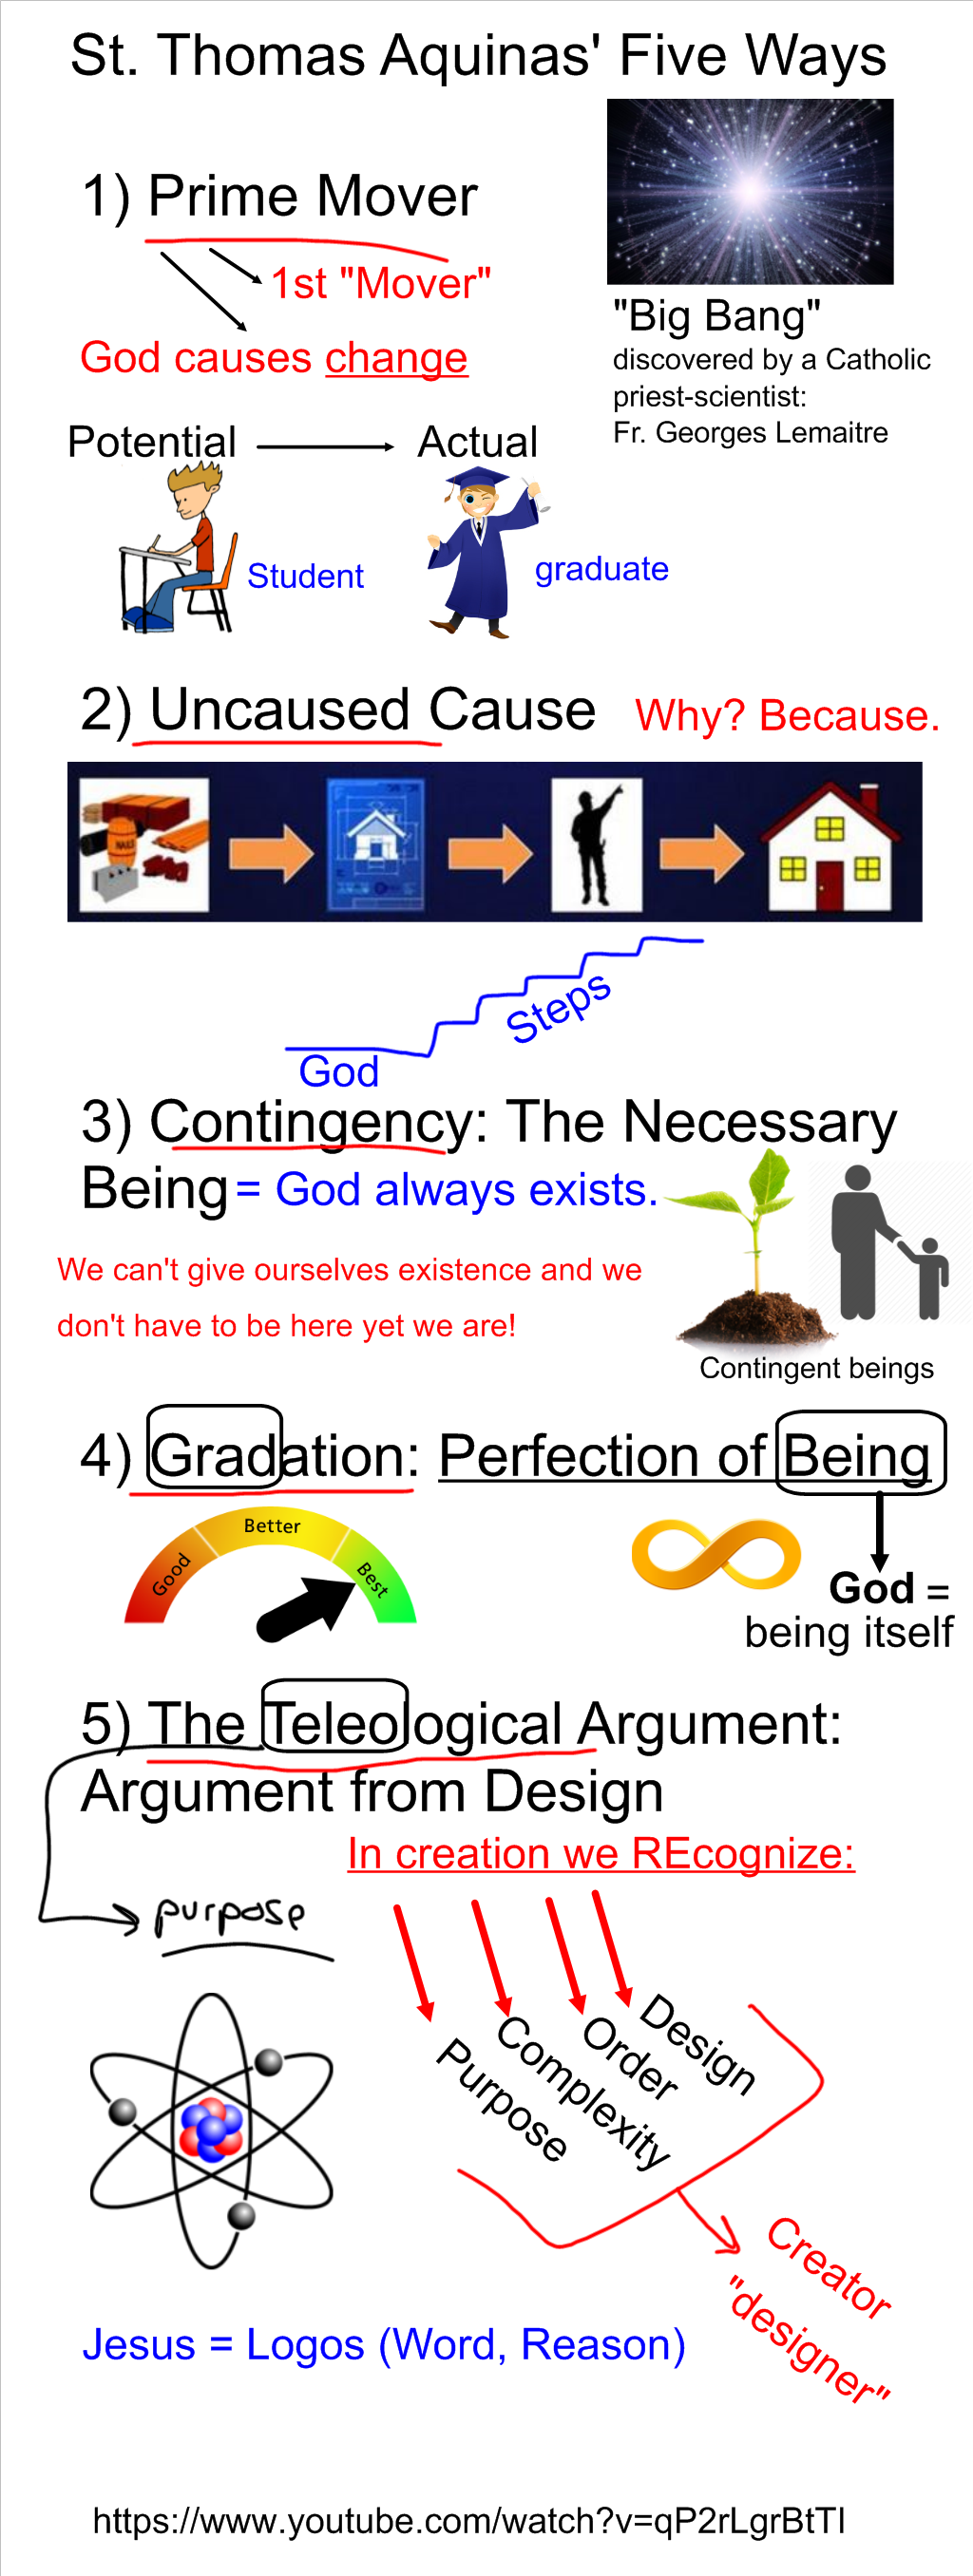 St Thoma Aquina Five Way Or Explanation To Prove The Existence Of God Teleological Argument Philosophy Essay Catholic Quotes Exist